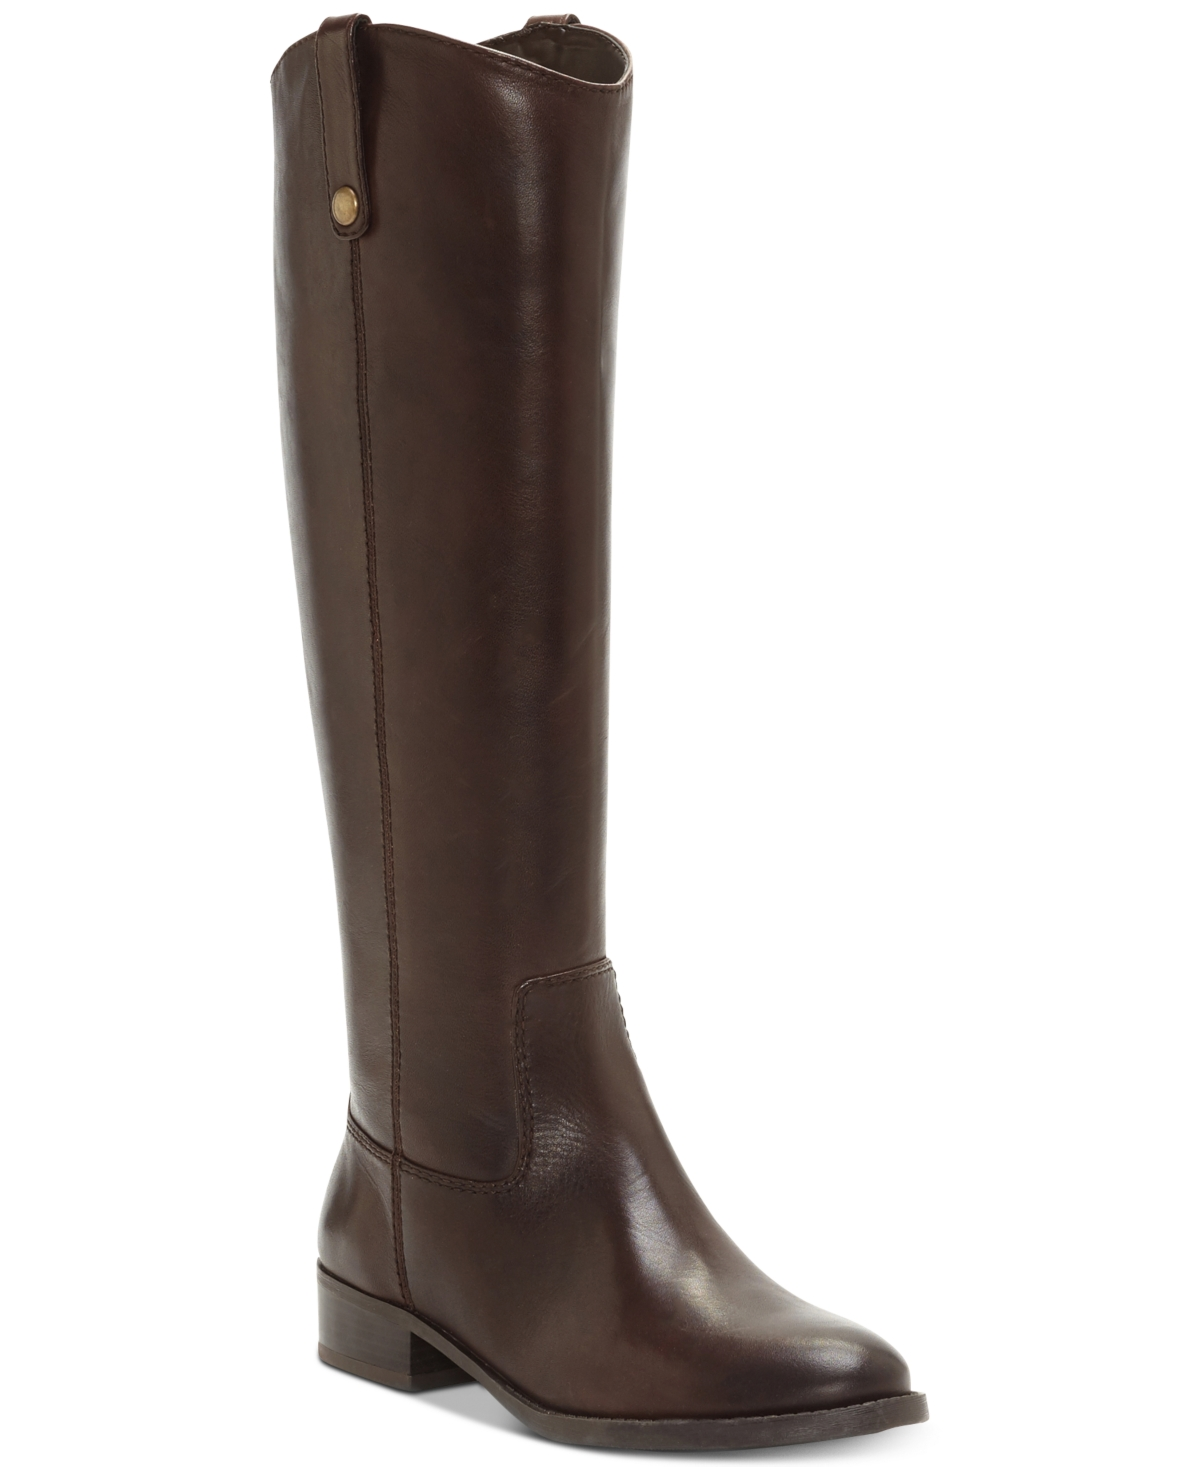 Inc International Concepts Fawne Riding Leather Boots, Created for Macy's Women's Shoes